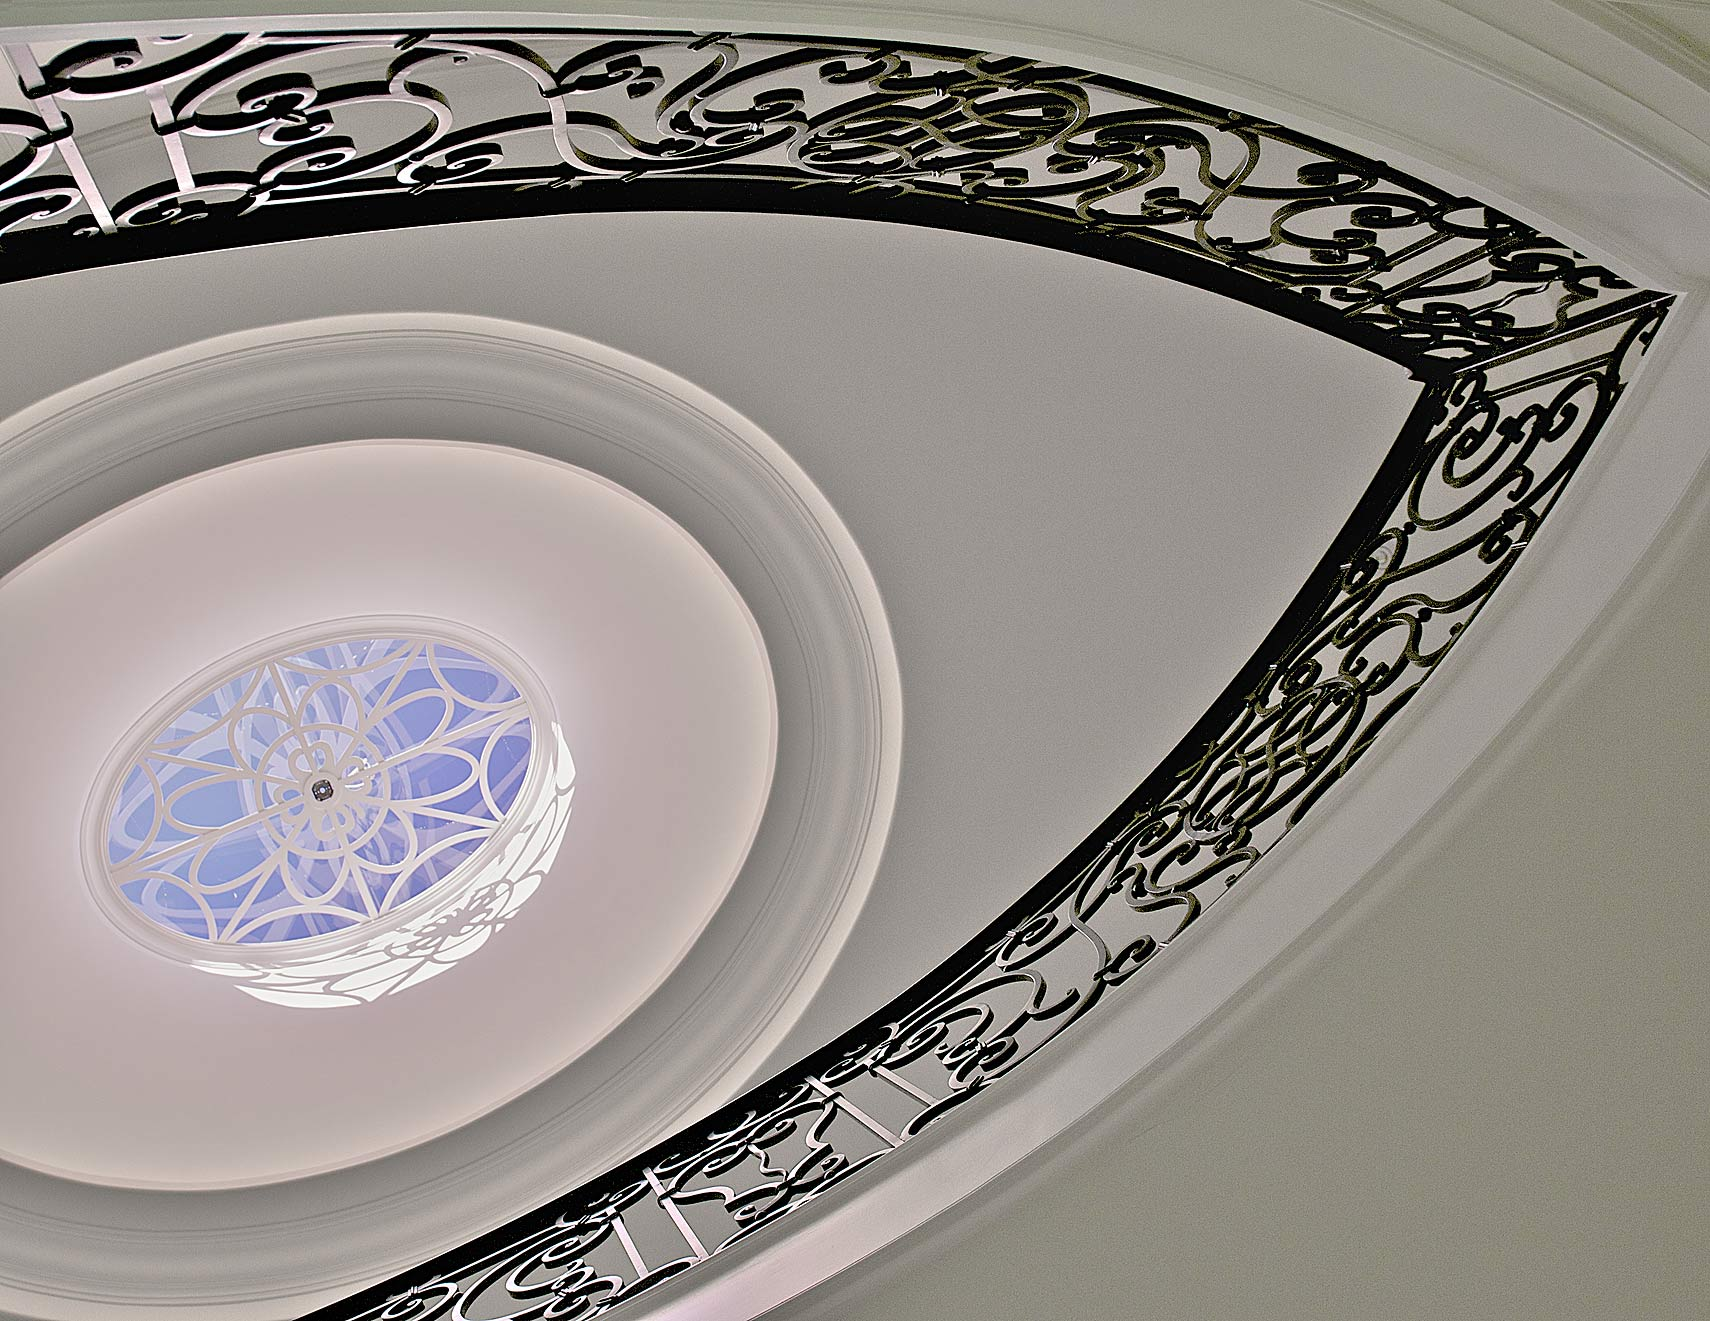 50-interiordesign-traditional-MakowArchitects-060-skylight